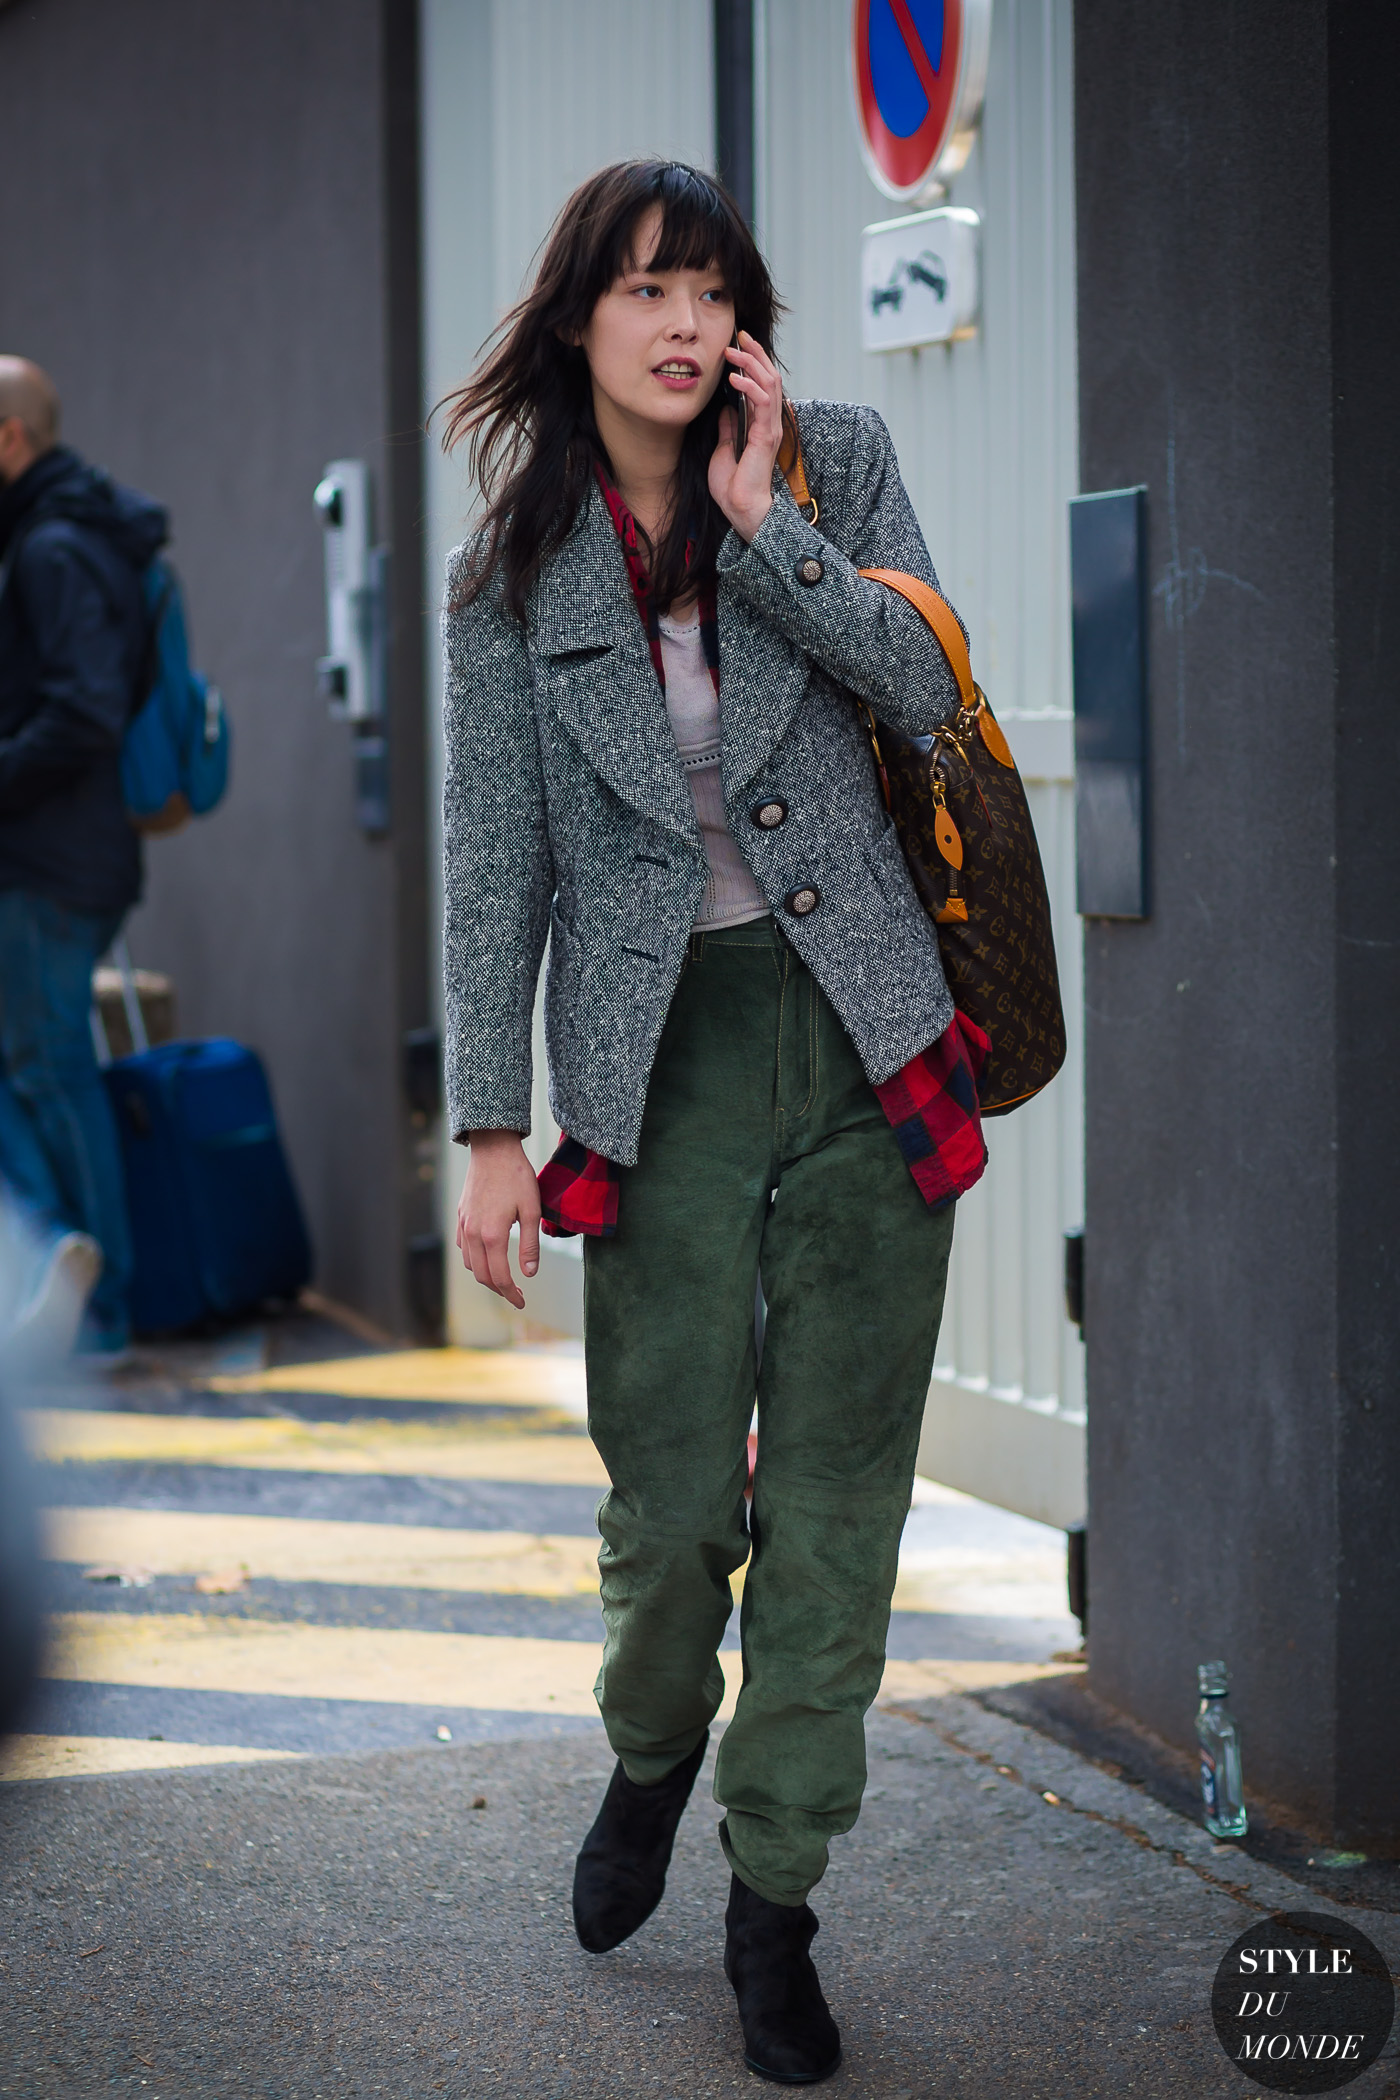 mae-mei-lapres-by-styledumonde-street-style-fashion-photography